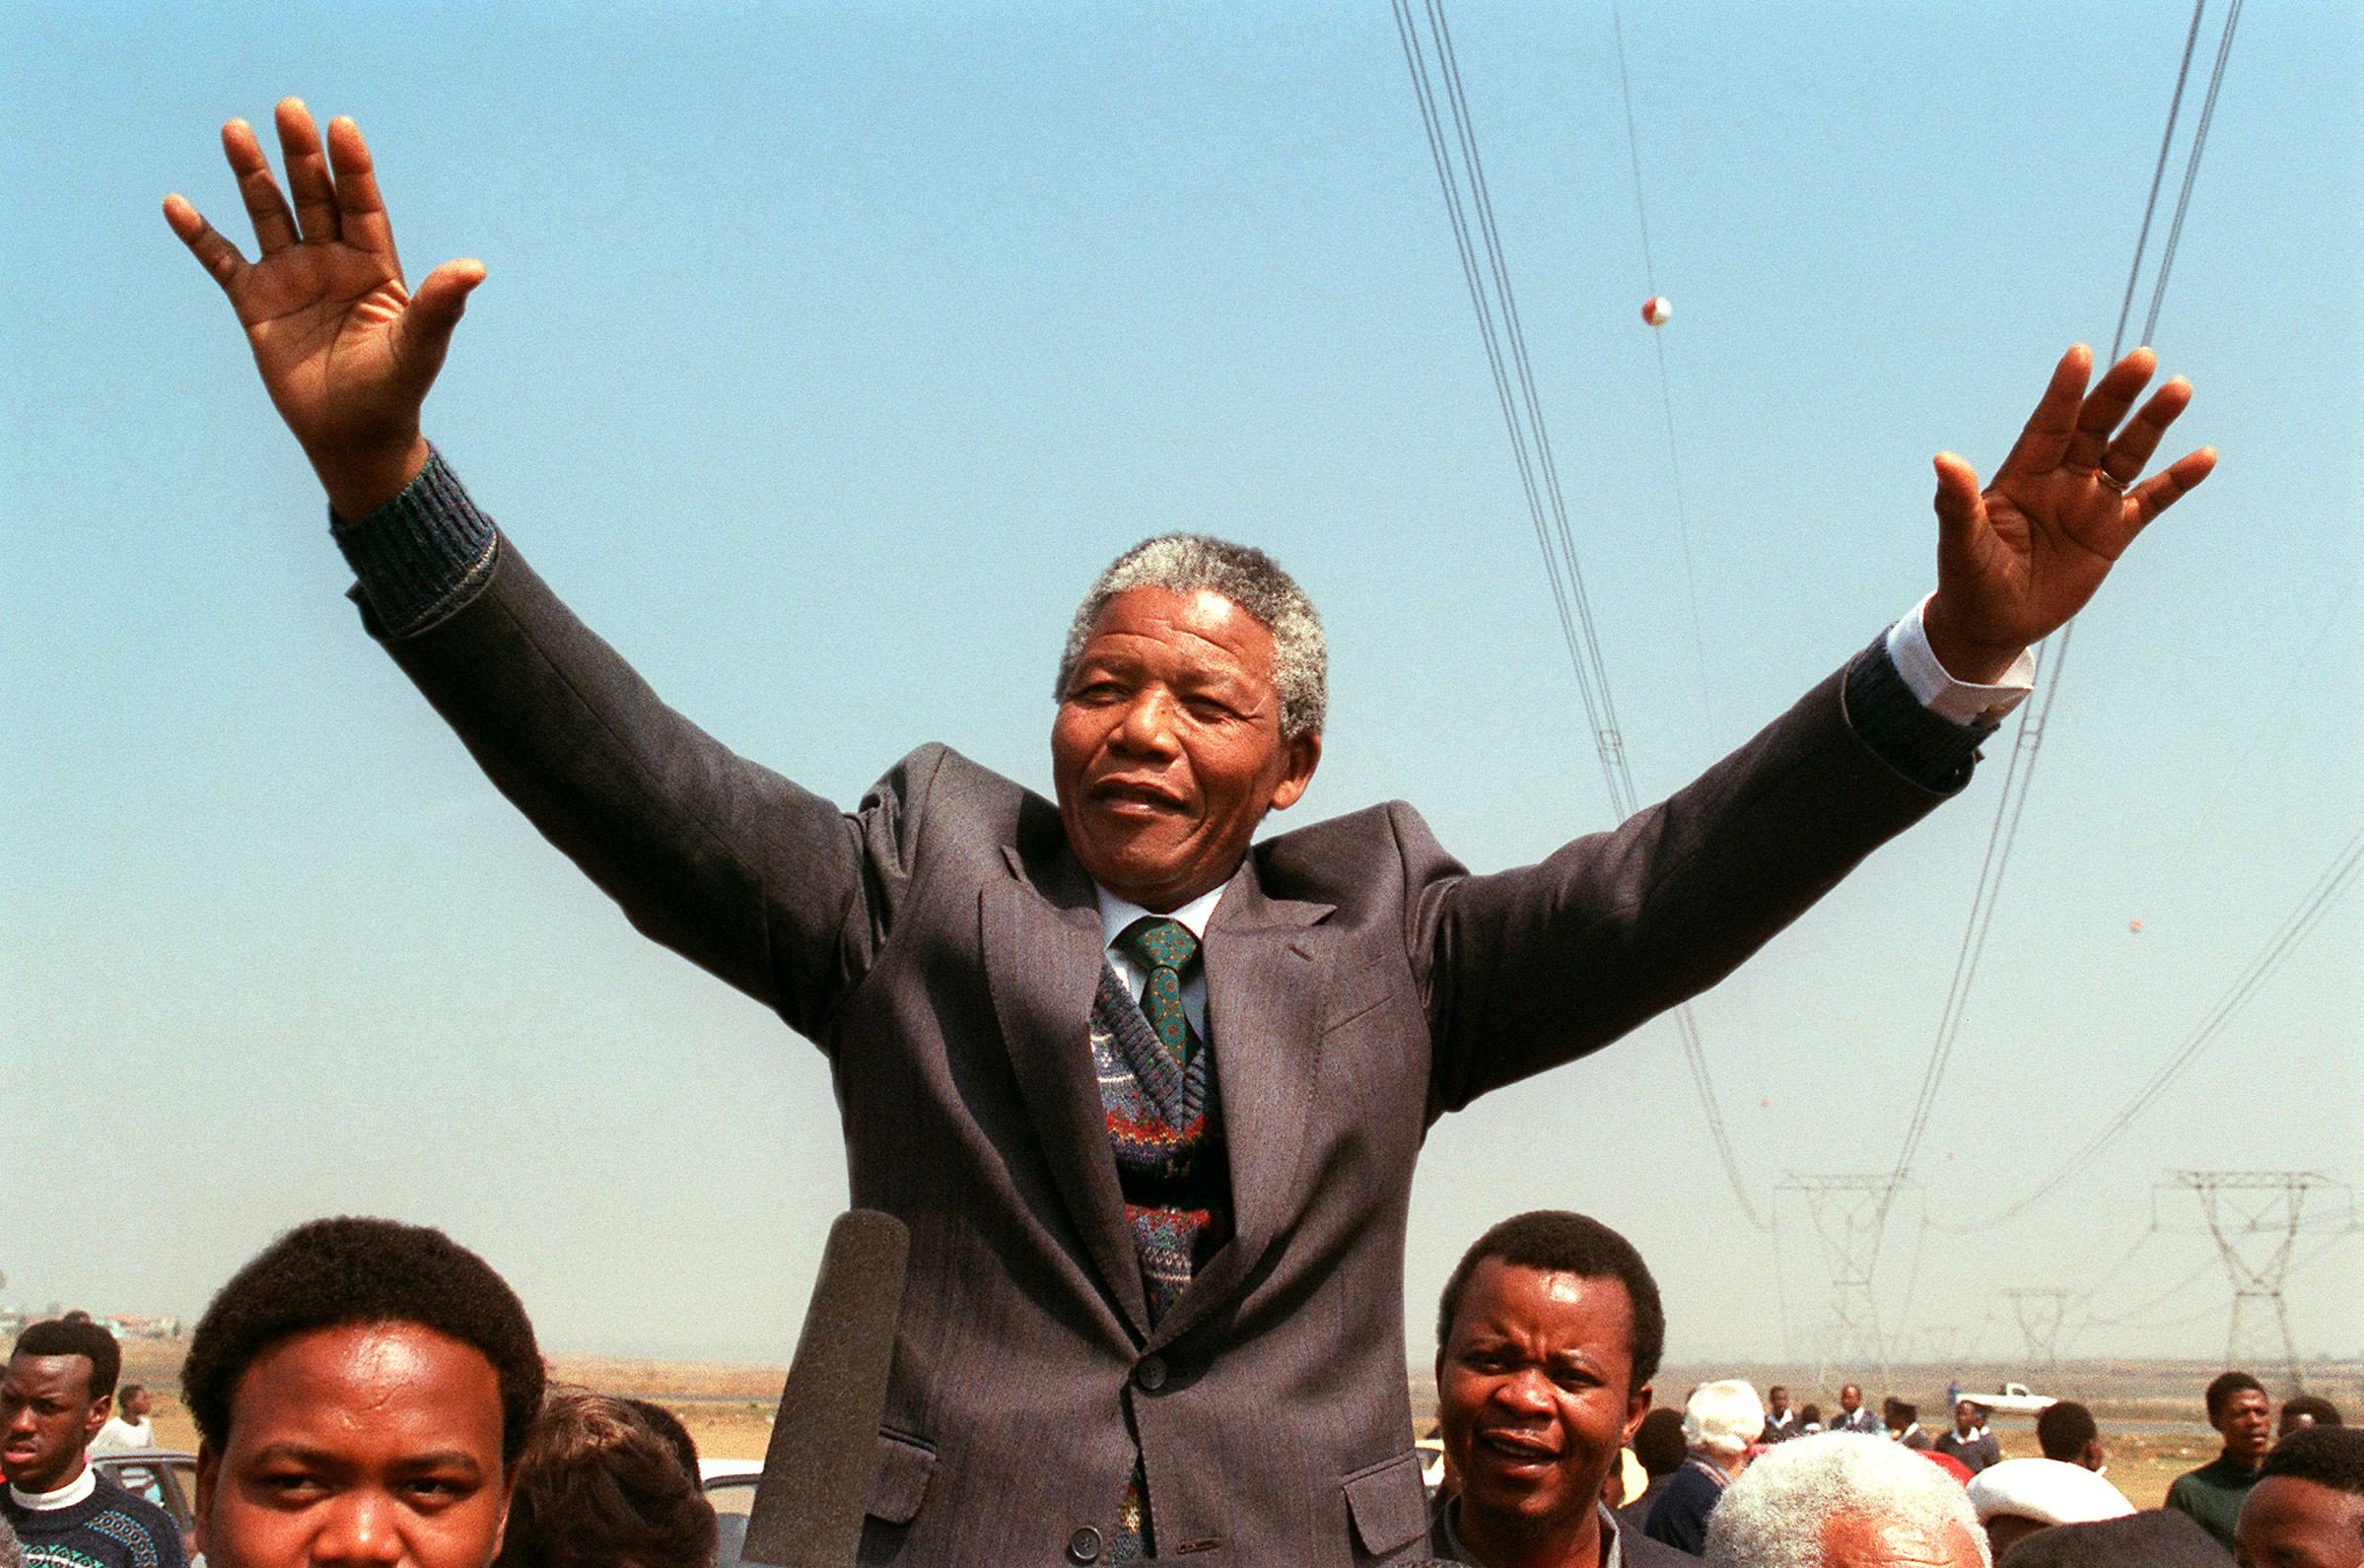 TOKOZA, SOUTH AFRICA: South African National Congress President Nelson Mandela addresses 05 September 1990 in Tokoza a crowd of residents from the Phola park squatter camp during his tour of townships. (Photo credit should read TREVOR SAMSON/AFP/Getty Images)